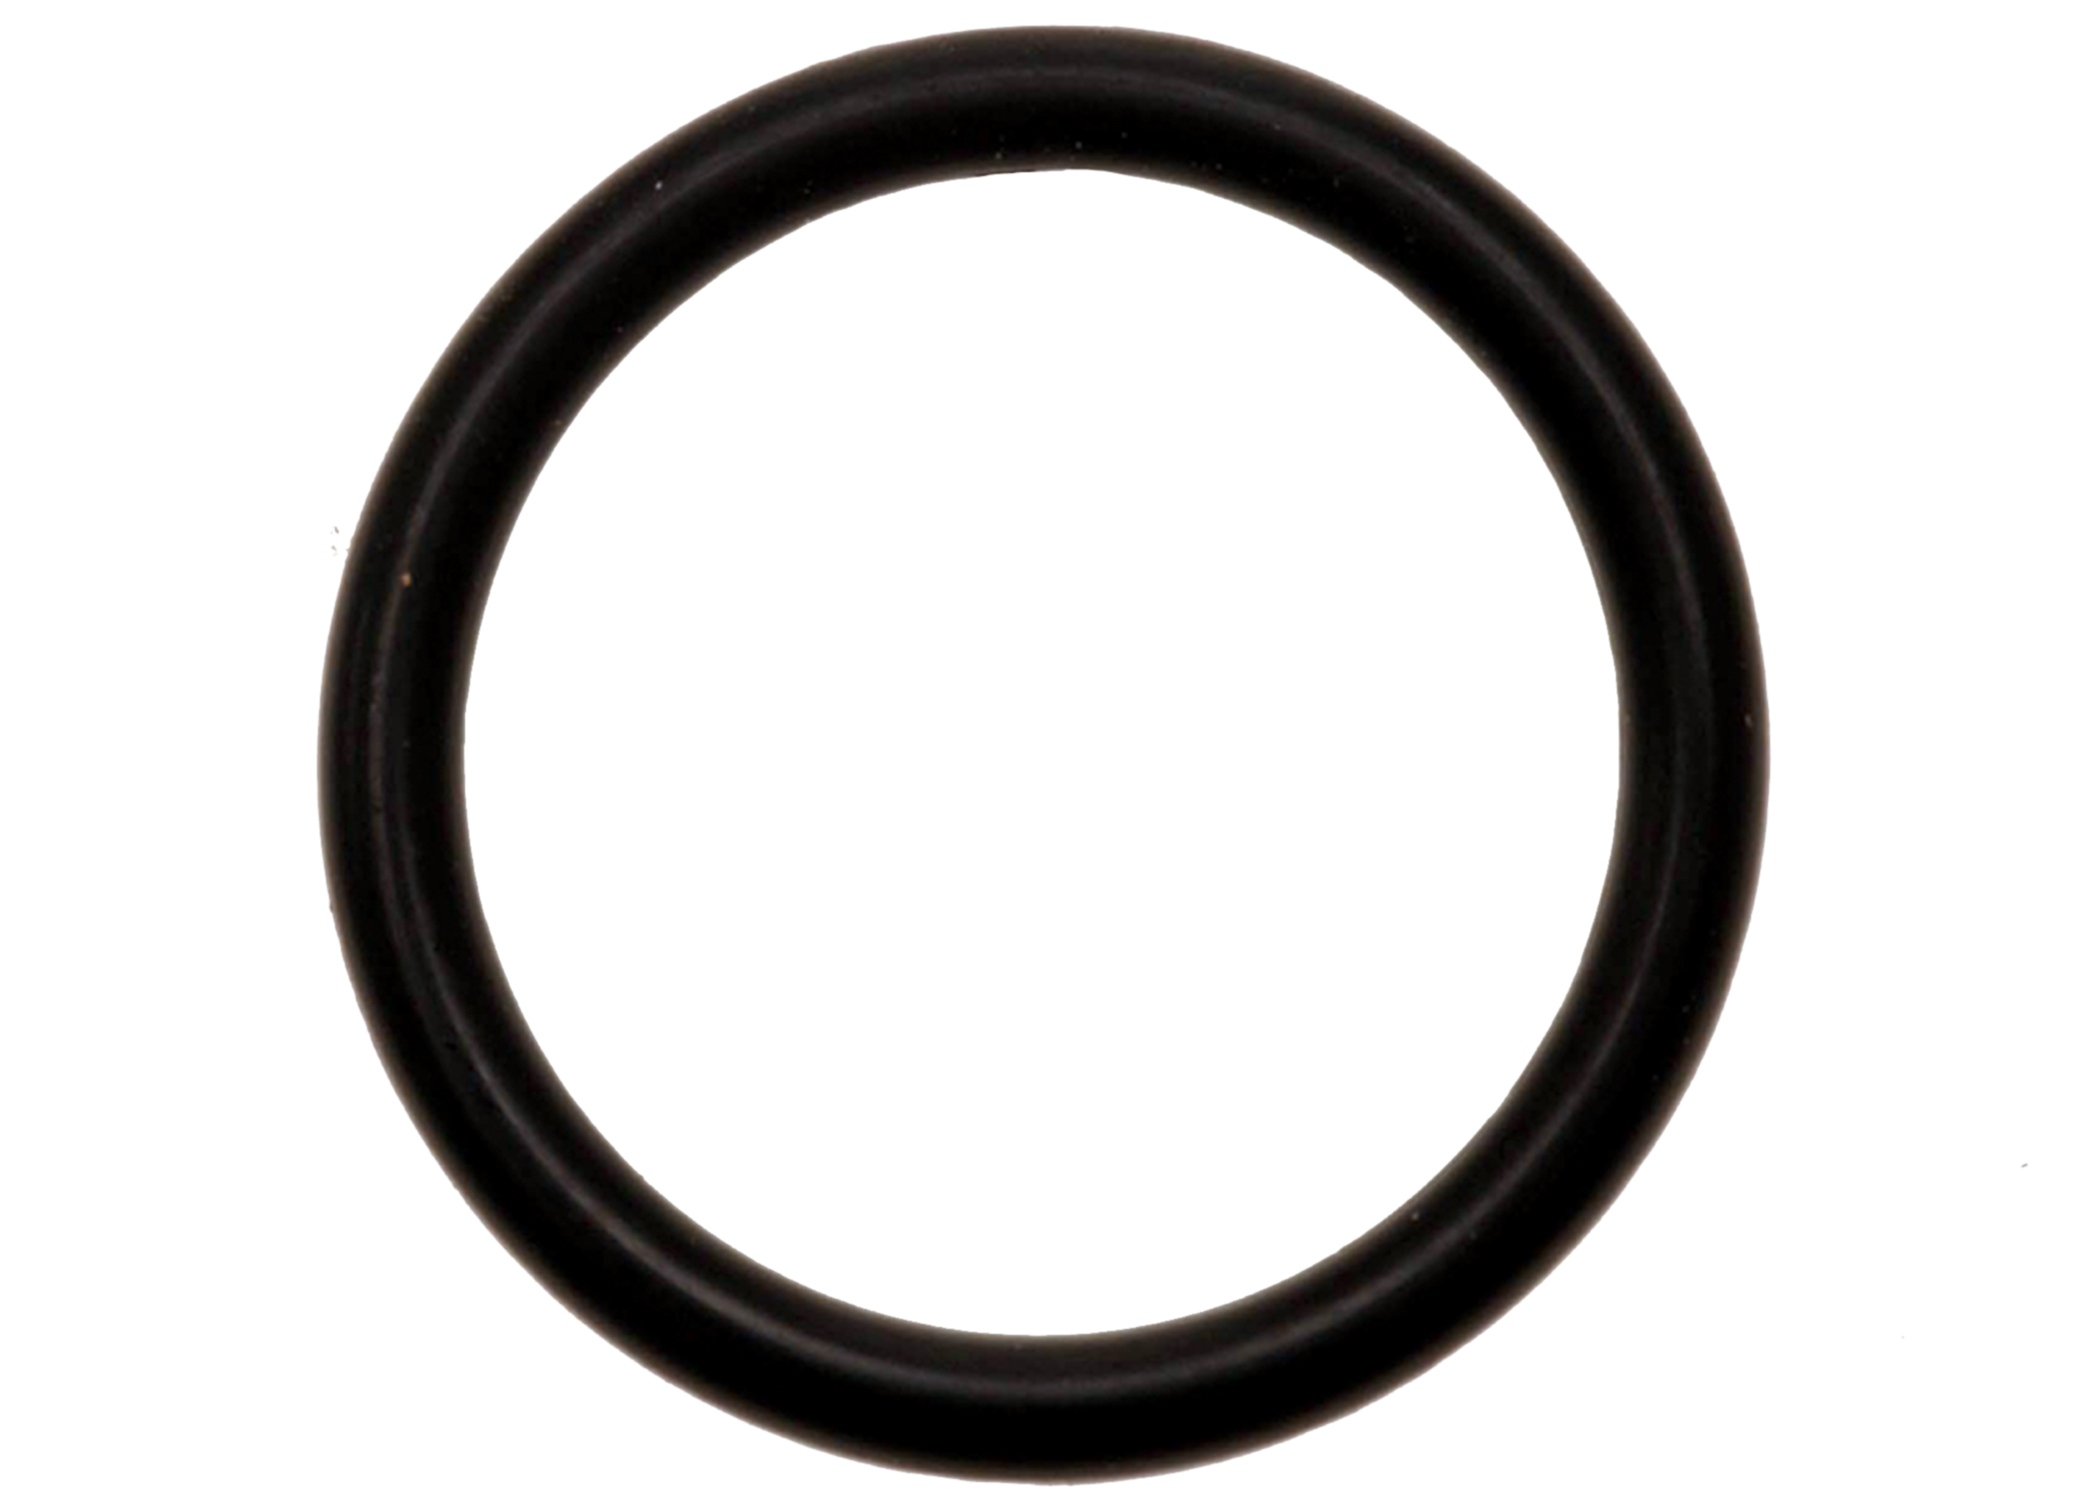 ACDELCO OE SERVICE - Transfer Case Shift Detent Plunger Plug Seal (O-Ring) - DCB 12386154